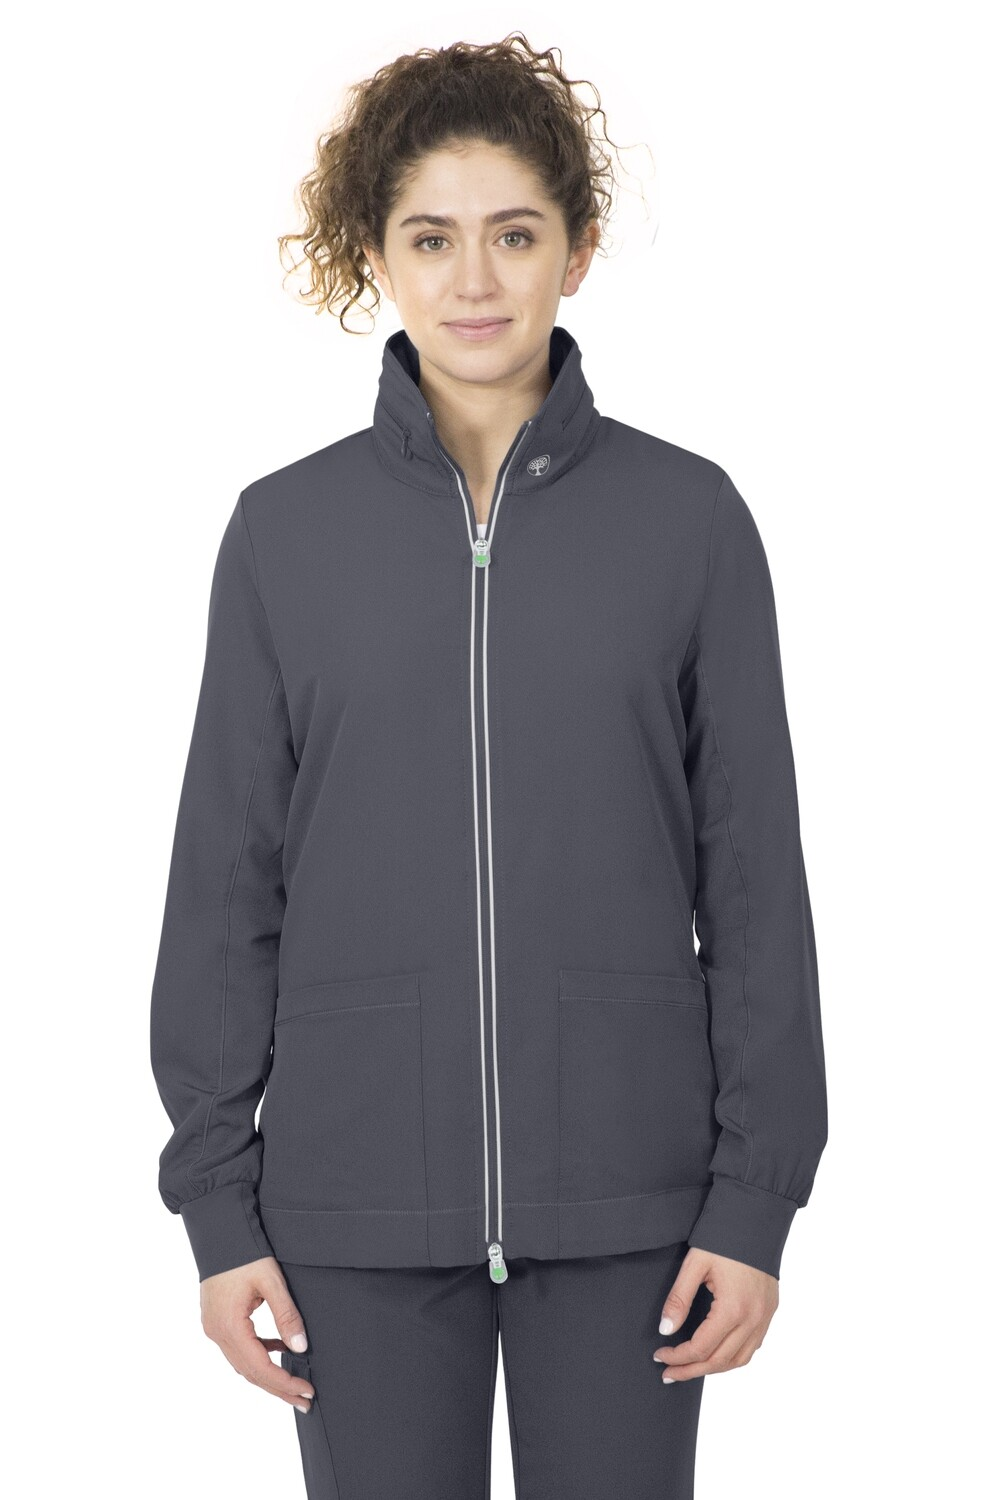 5065 CARRIE JACKET - PL S PEWTER